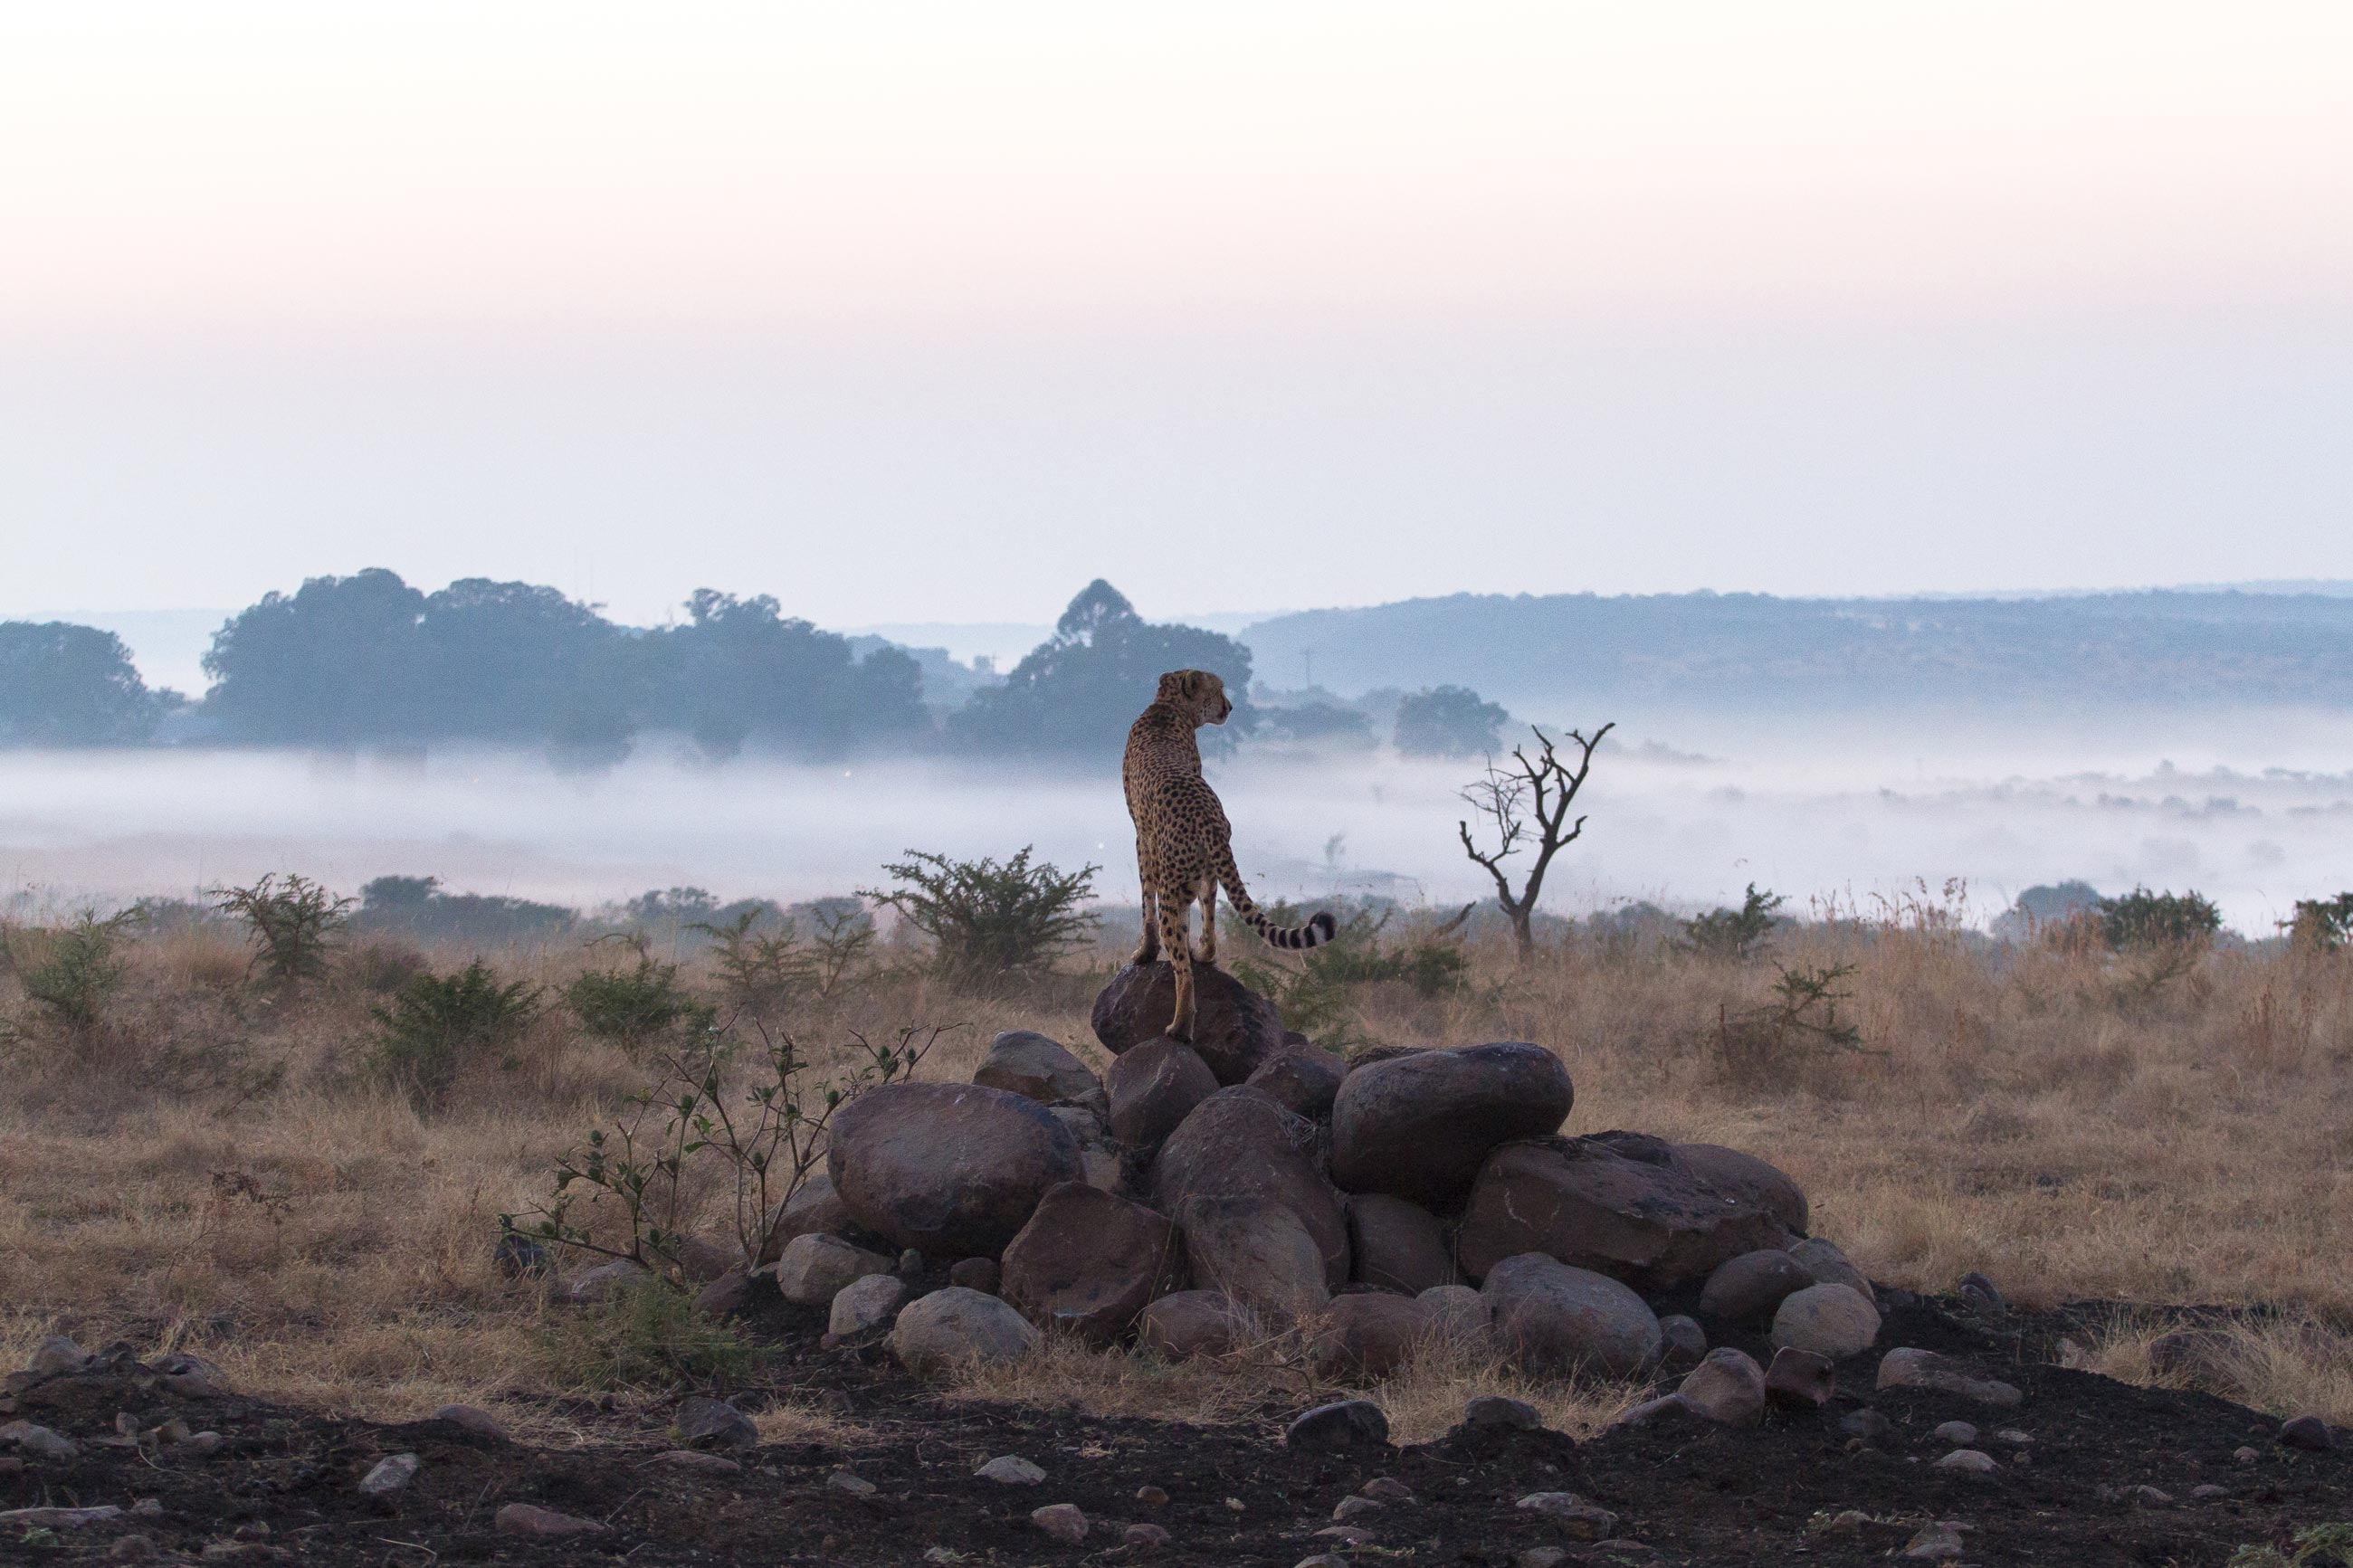 nambiti-game-reserve-south-africa-cheetah-sunrise